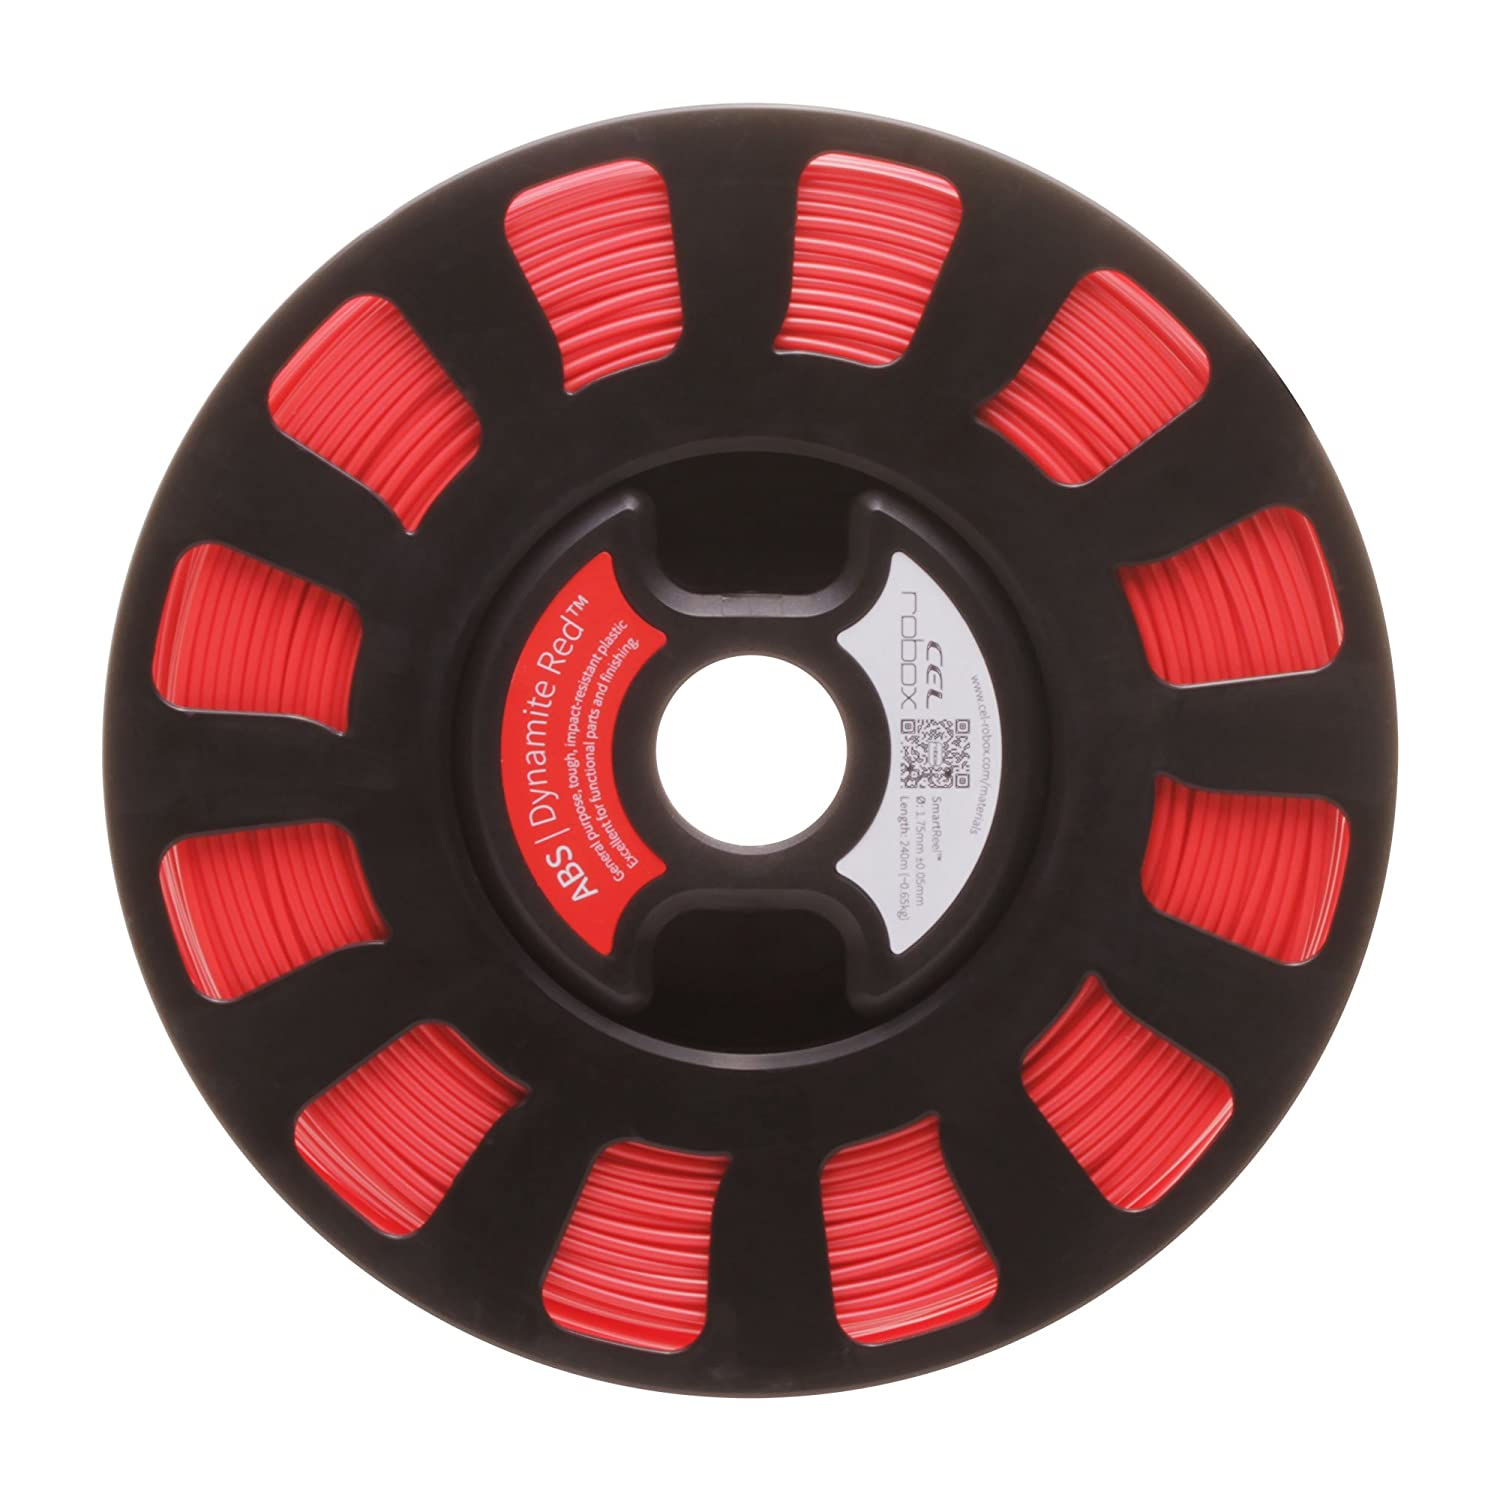 CEL RBX-ABS-RD537 ABS Filament, Dynamite Red